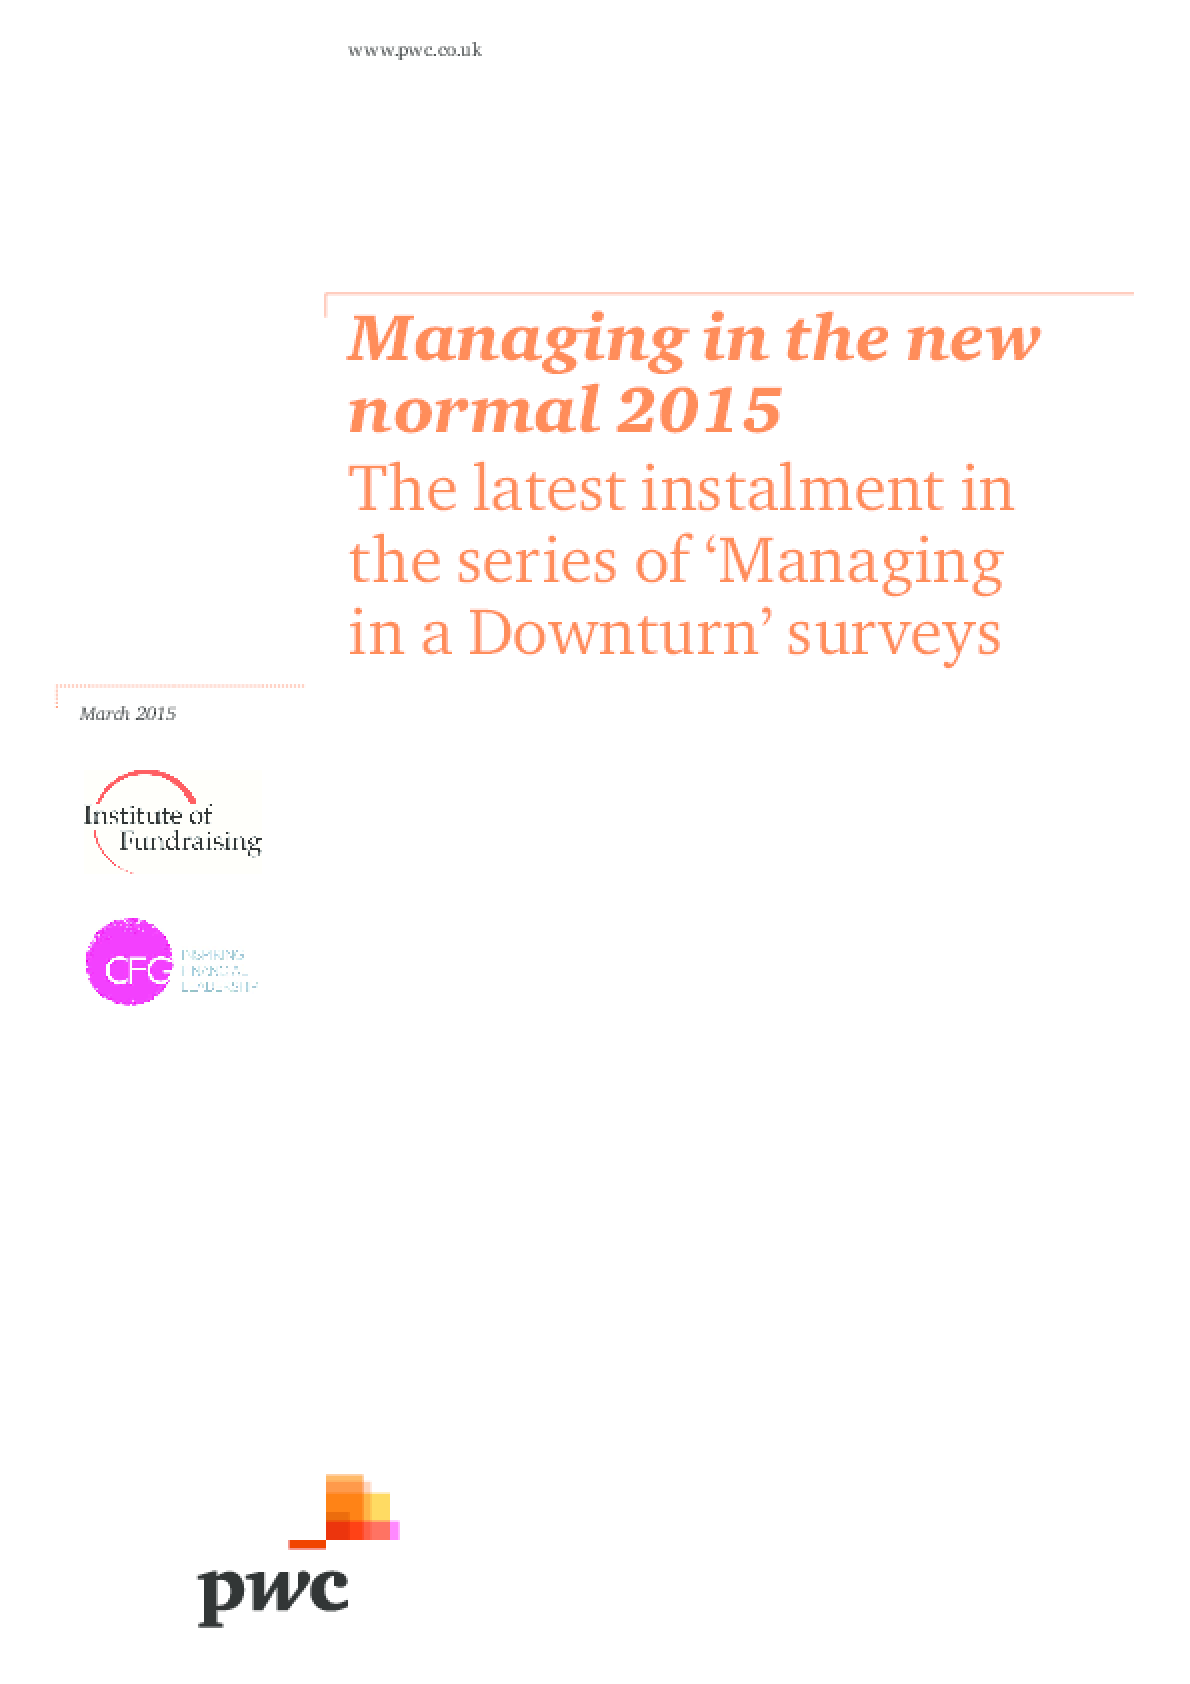 Managing in the New Normal 2015: The Latest Installment in the Series of 'Managing in a Downturn' Surveys